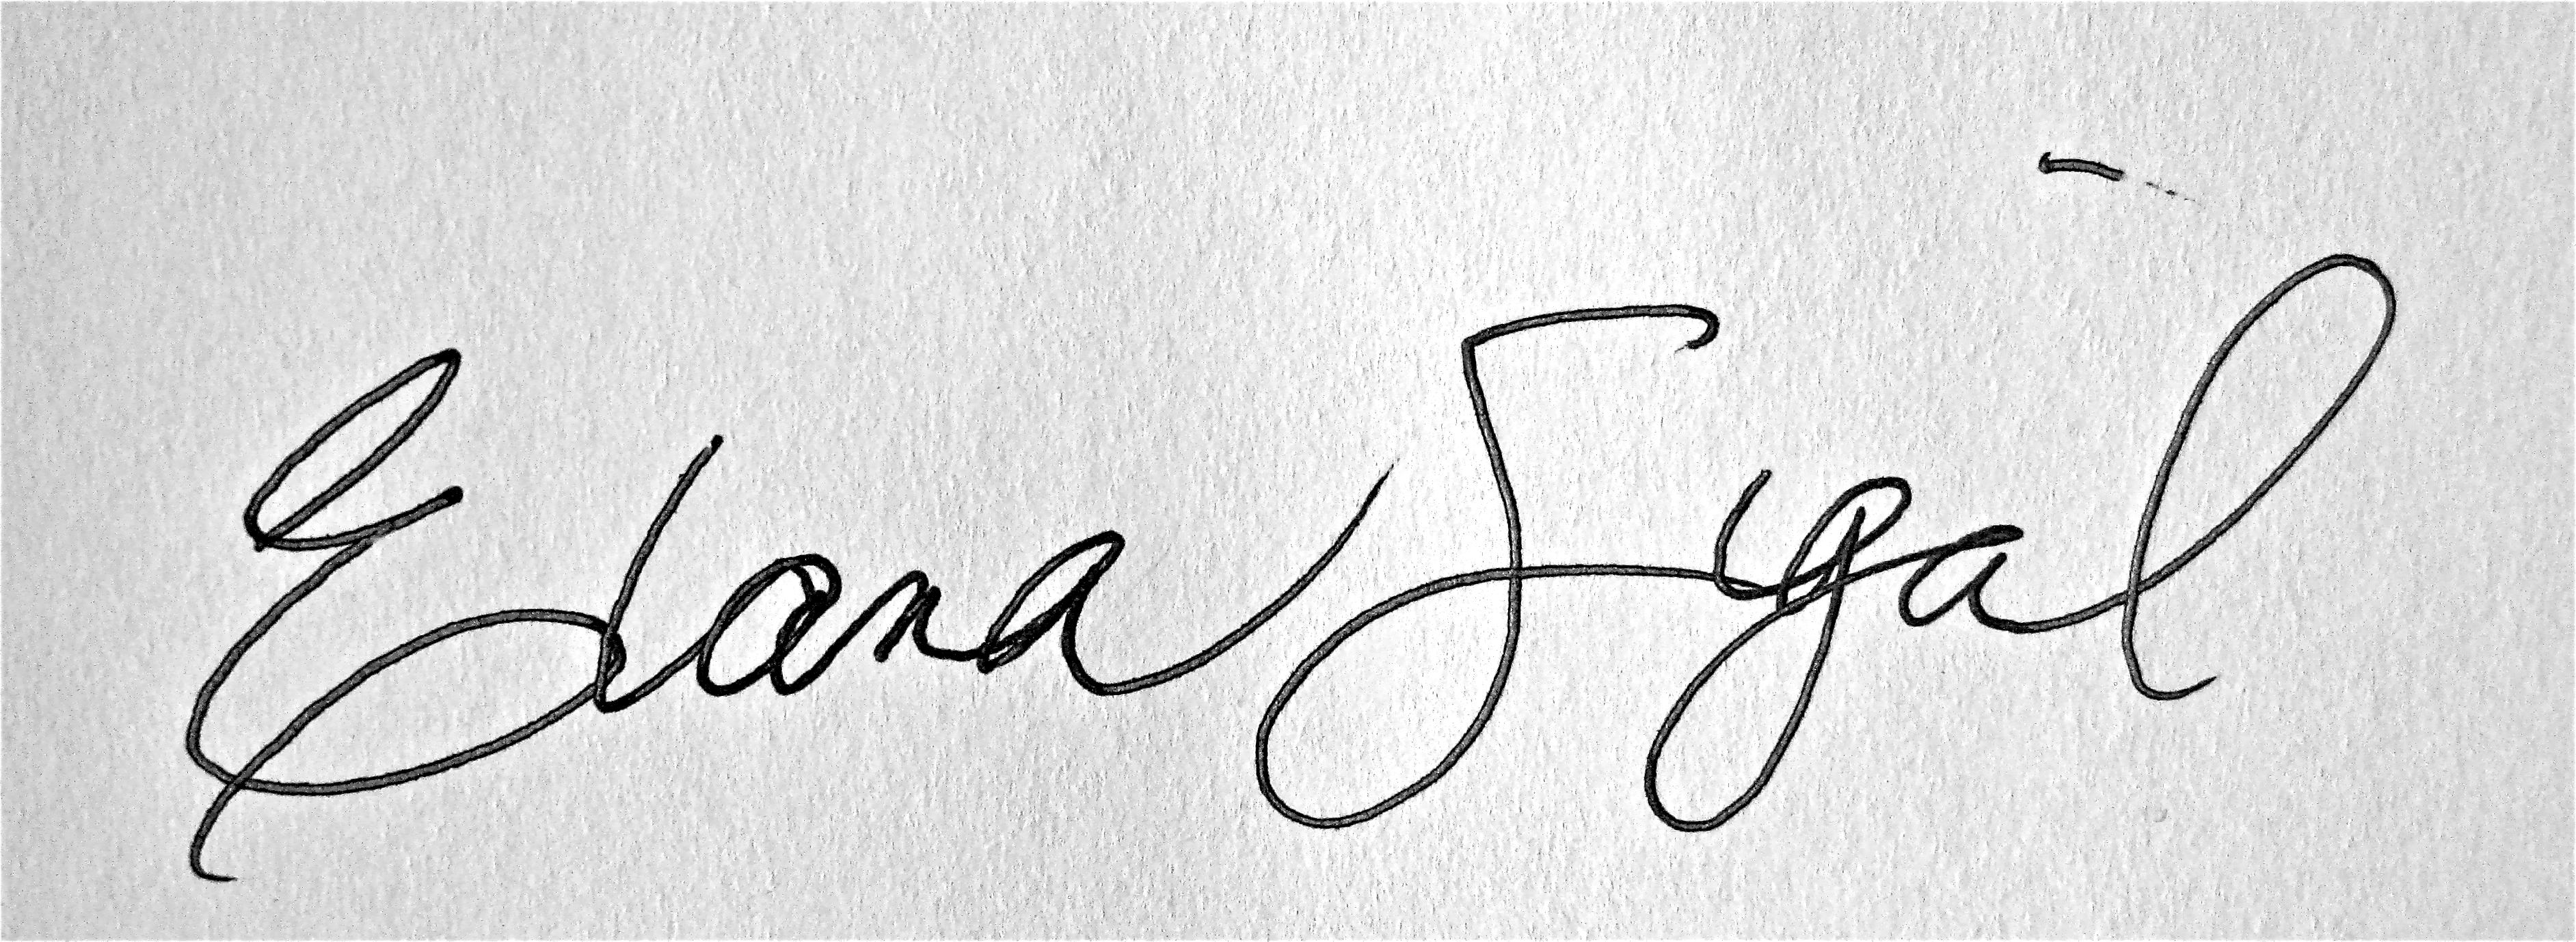 Elana Sigal Signature